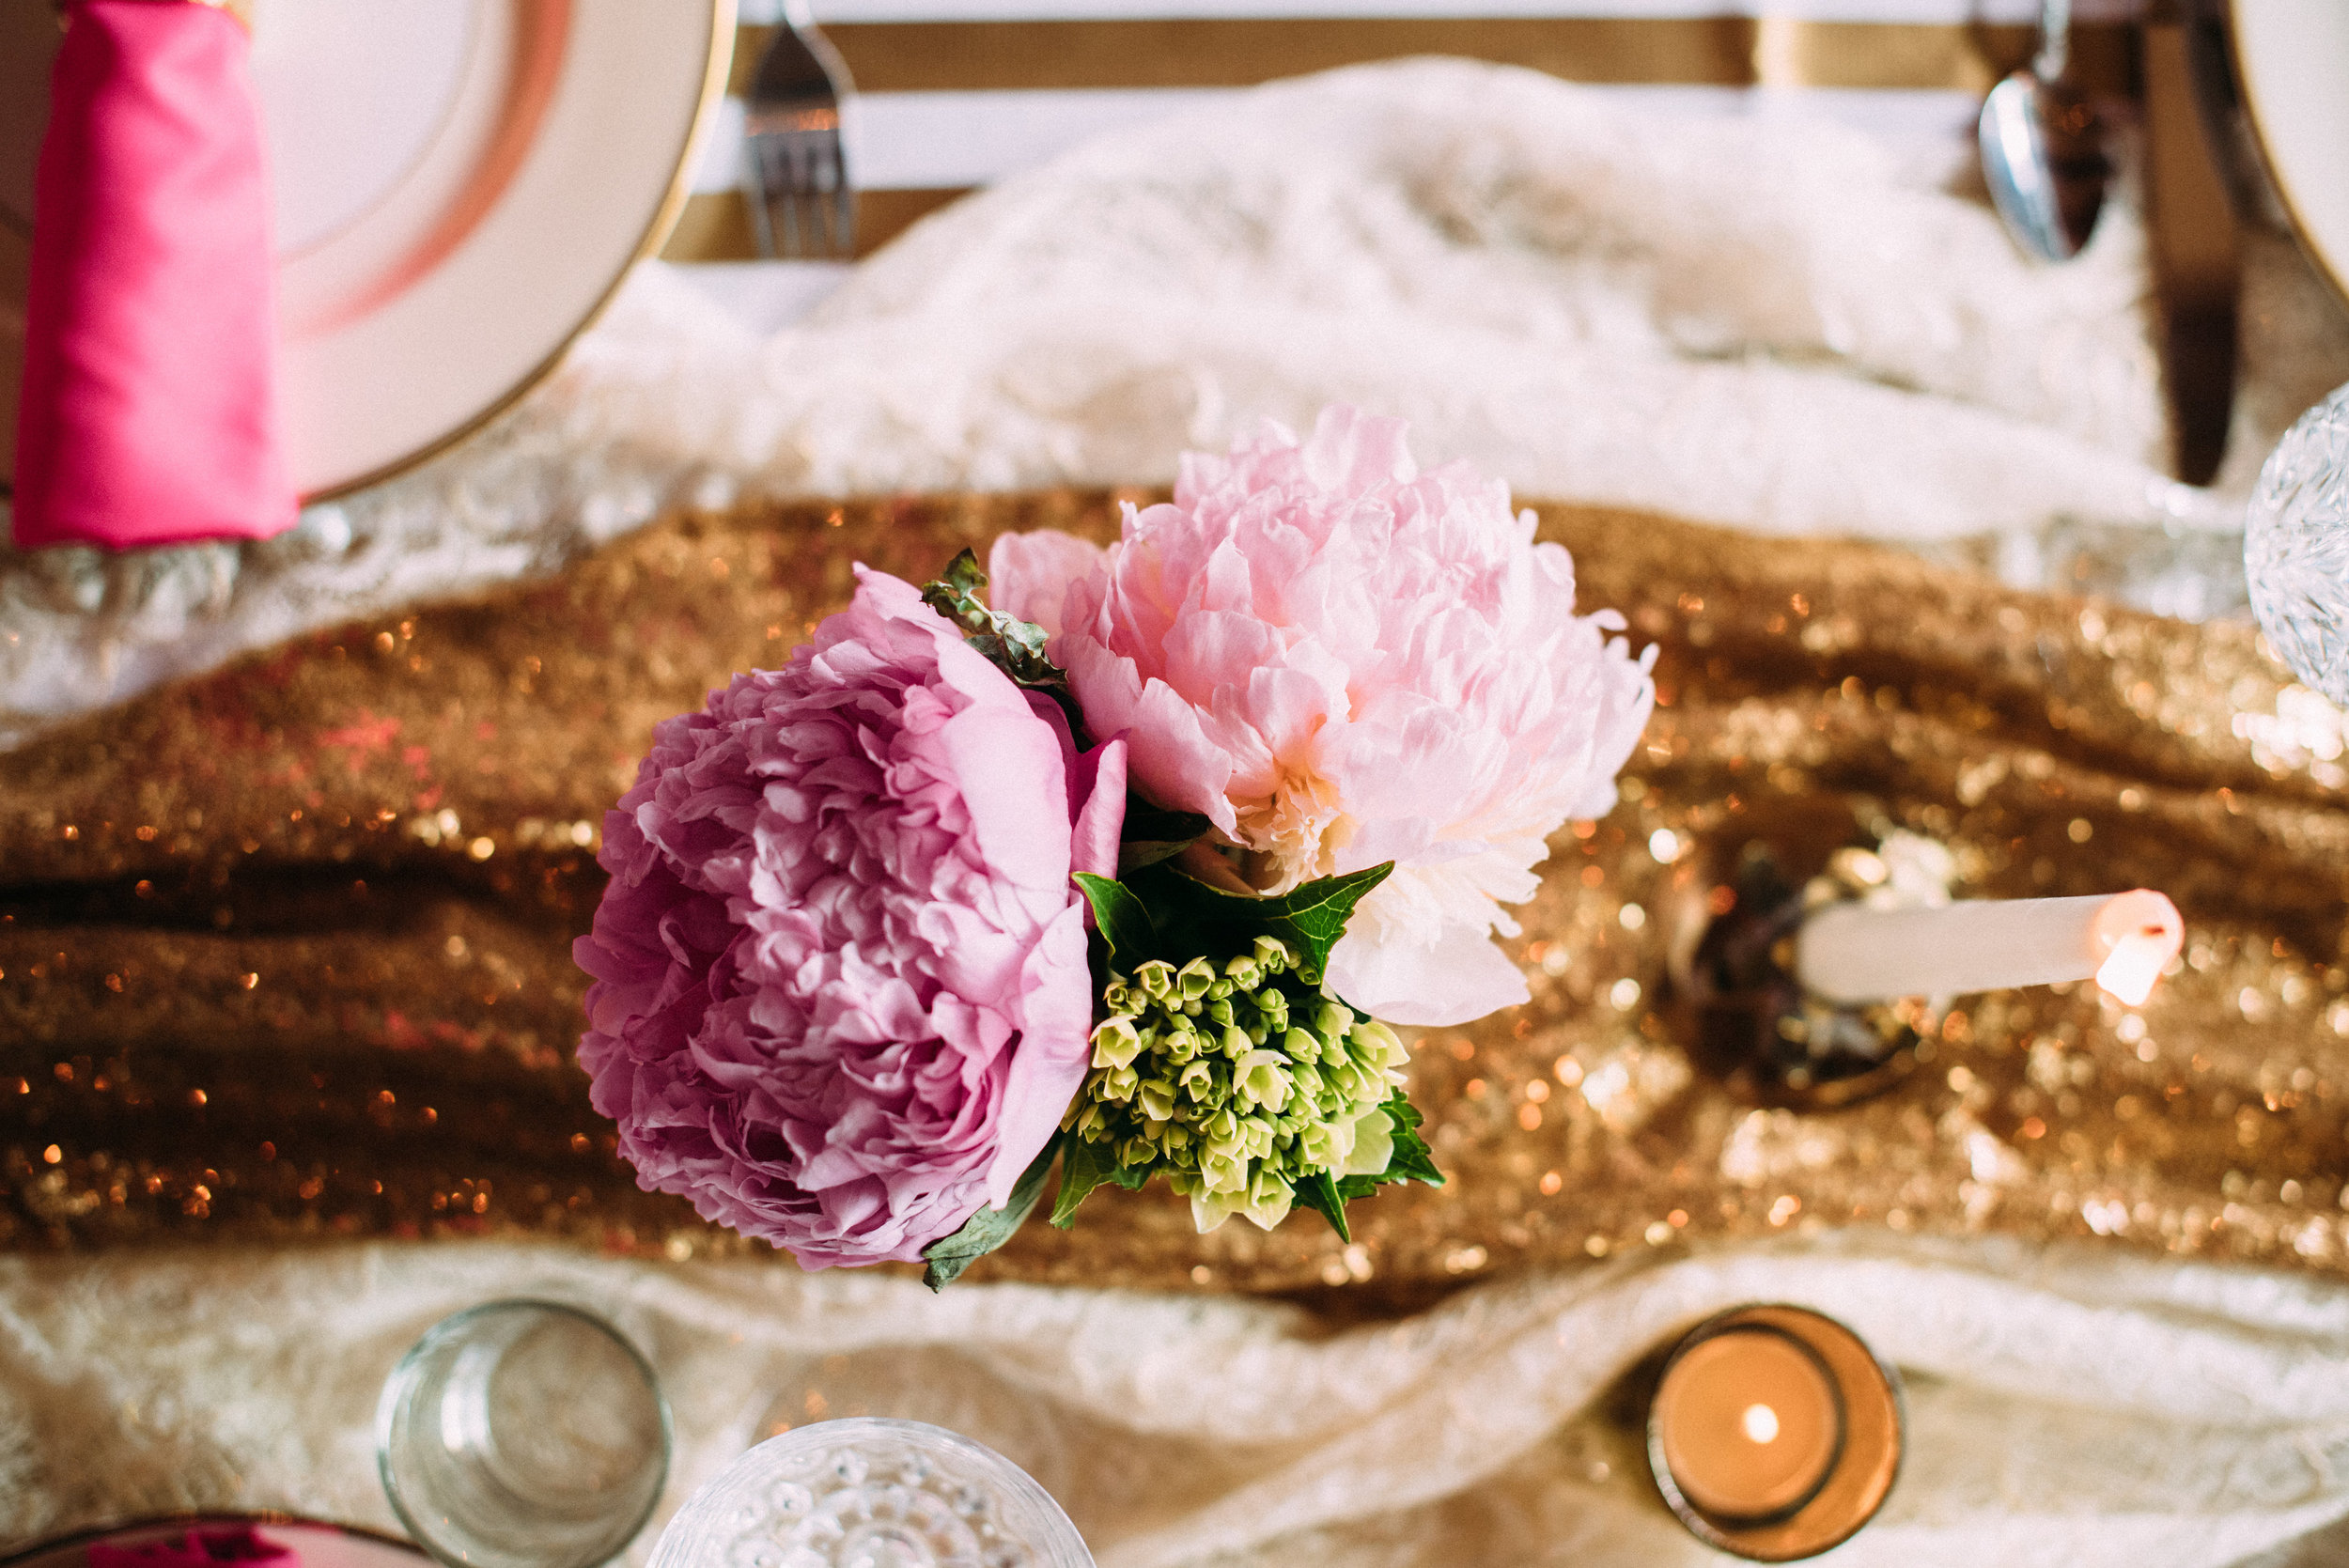 Let's all agree that Peonies should just bloom year round - deal?